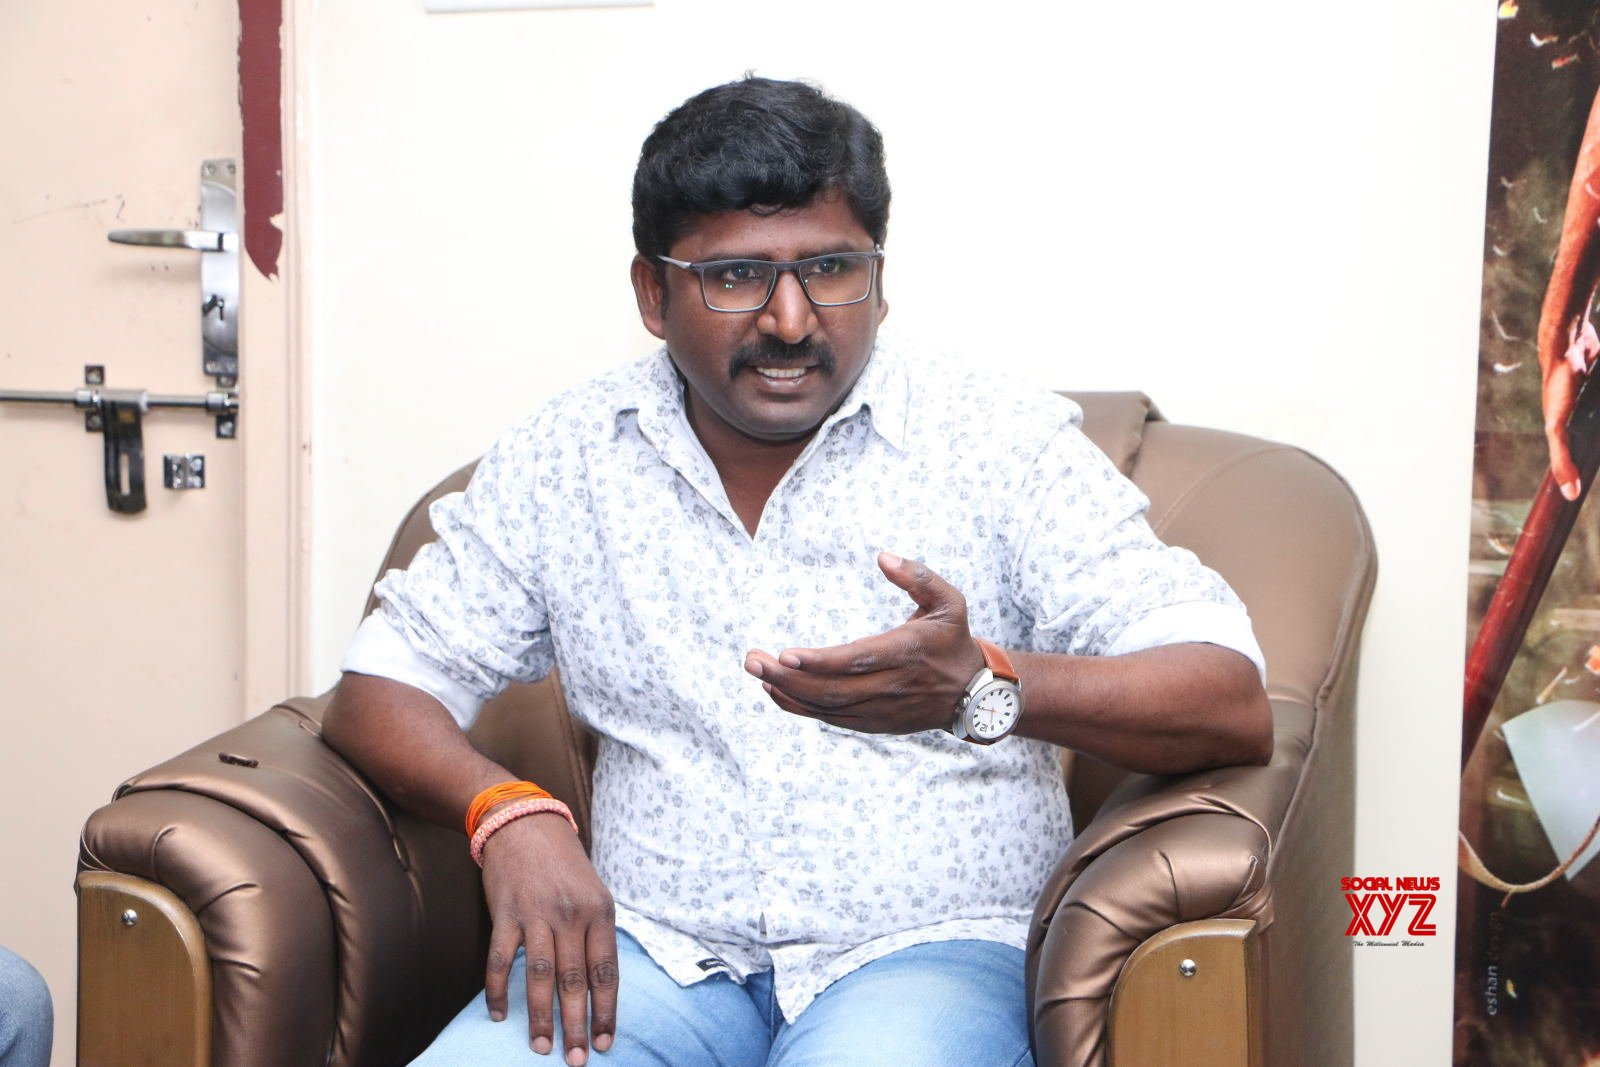 90 ML movie is not about drinkers: Director Sekhar Reddy interview